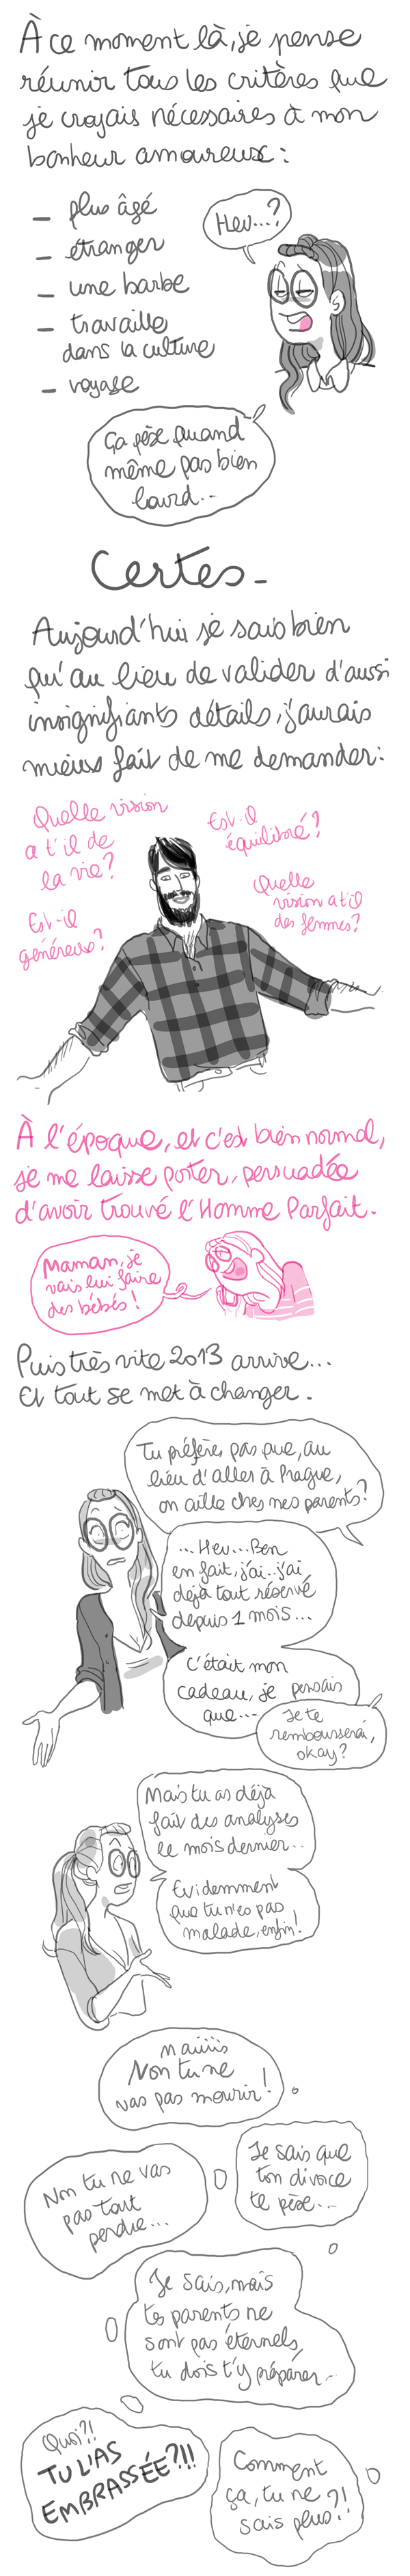 amour-13